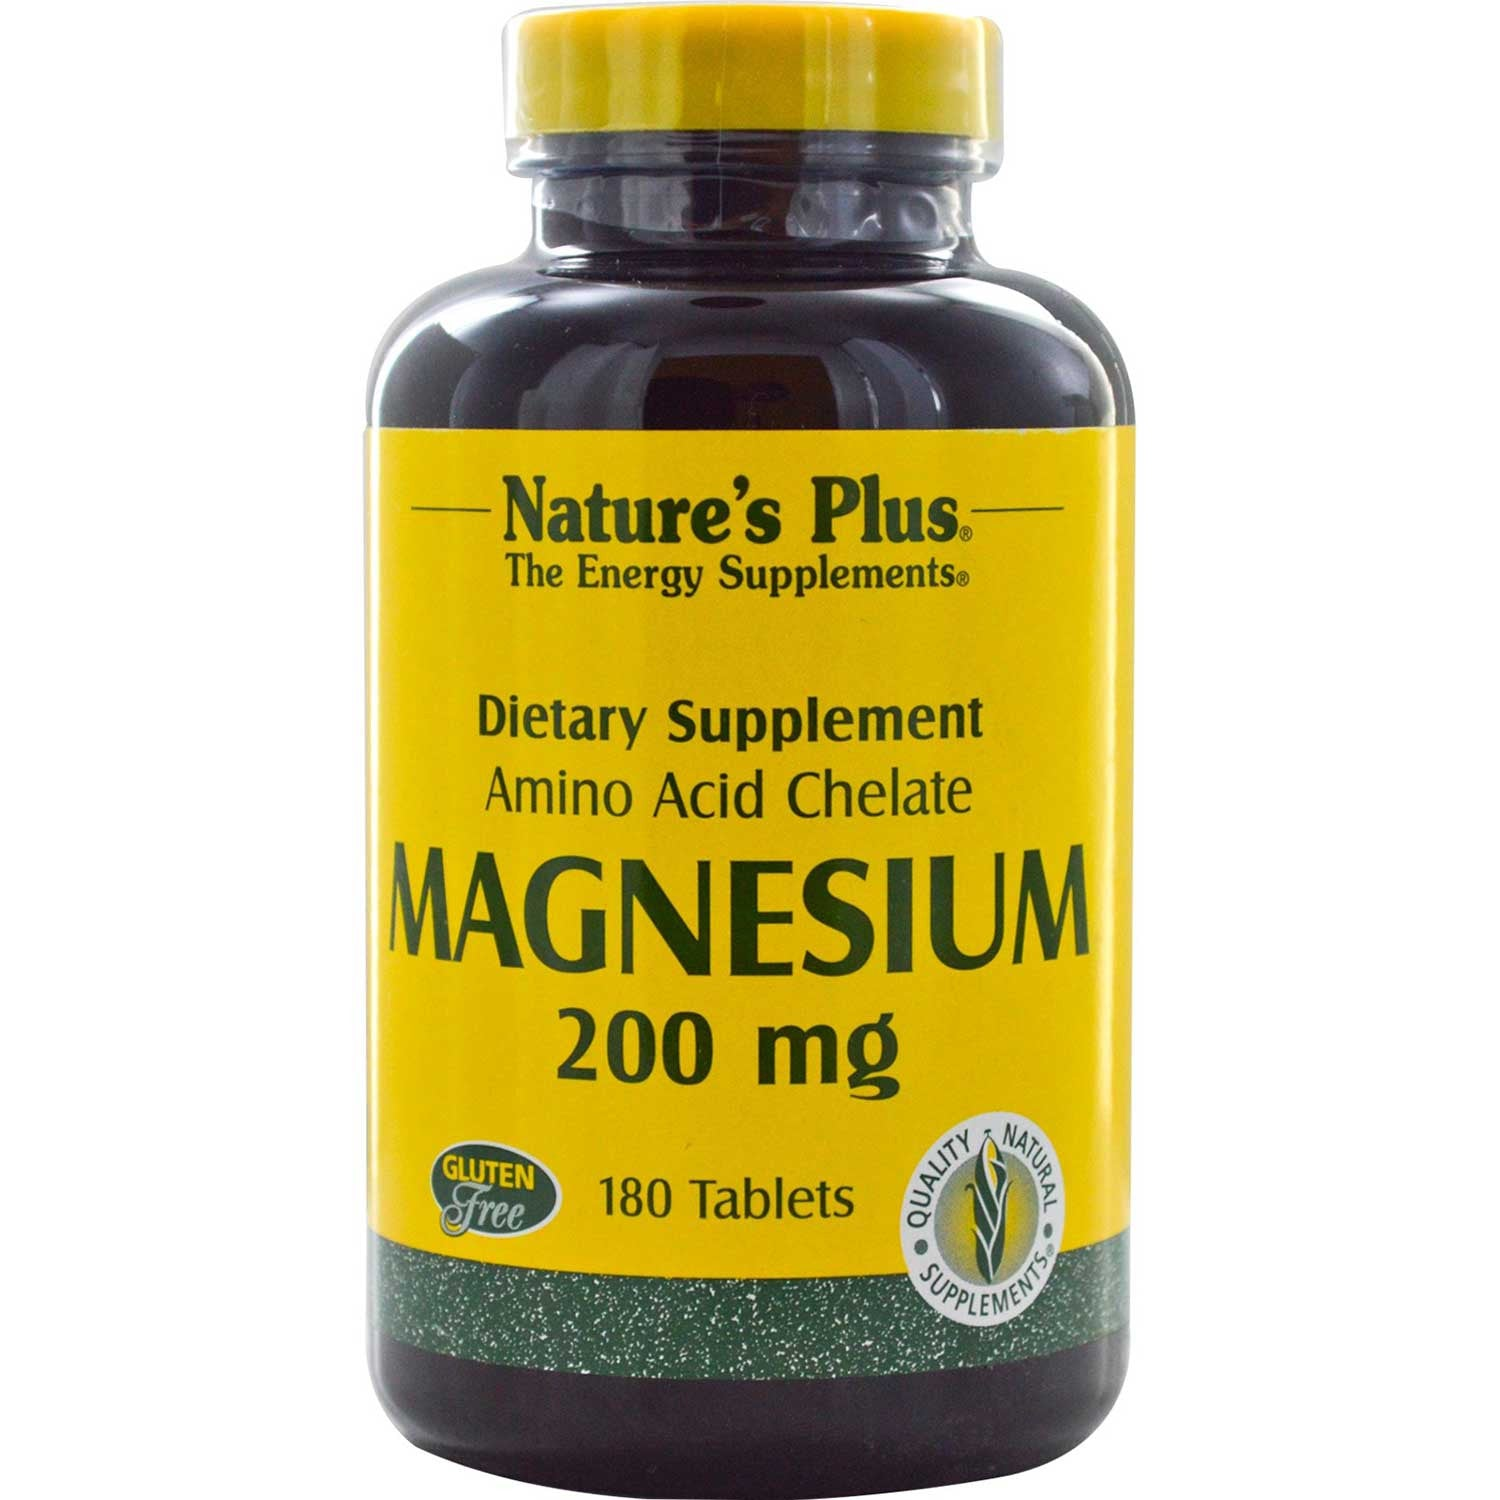 Natures Plus Magnesium 200 mg (Biotron Amino Acid Chelate), 180 tabs.-NaturesWisdom